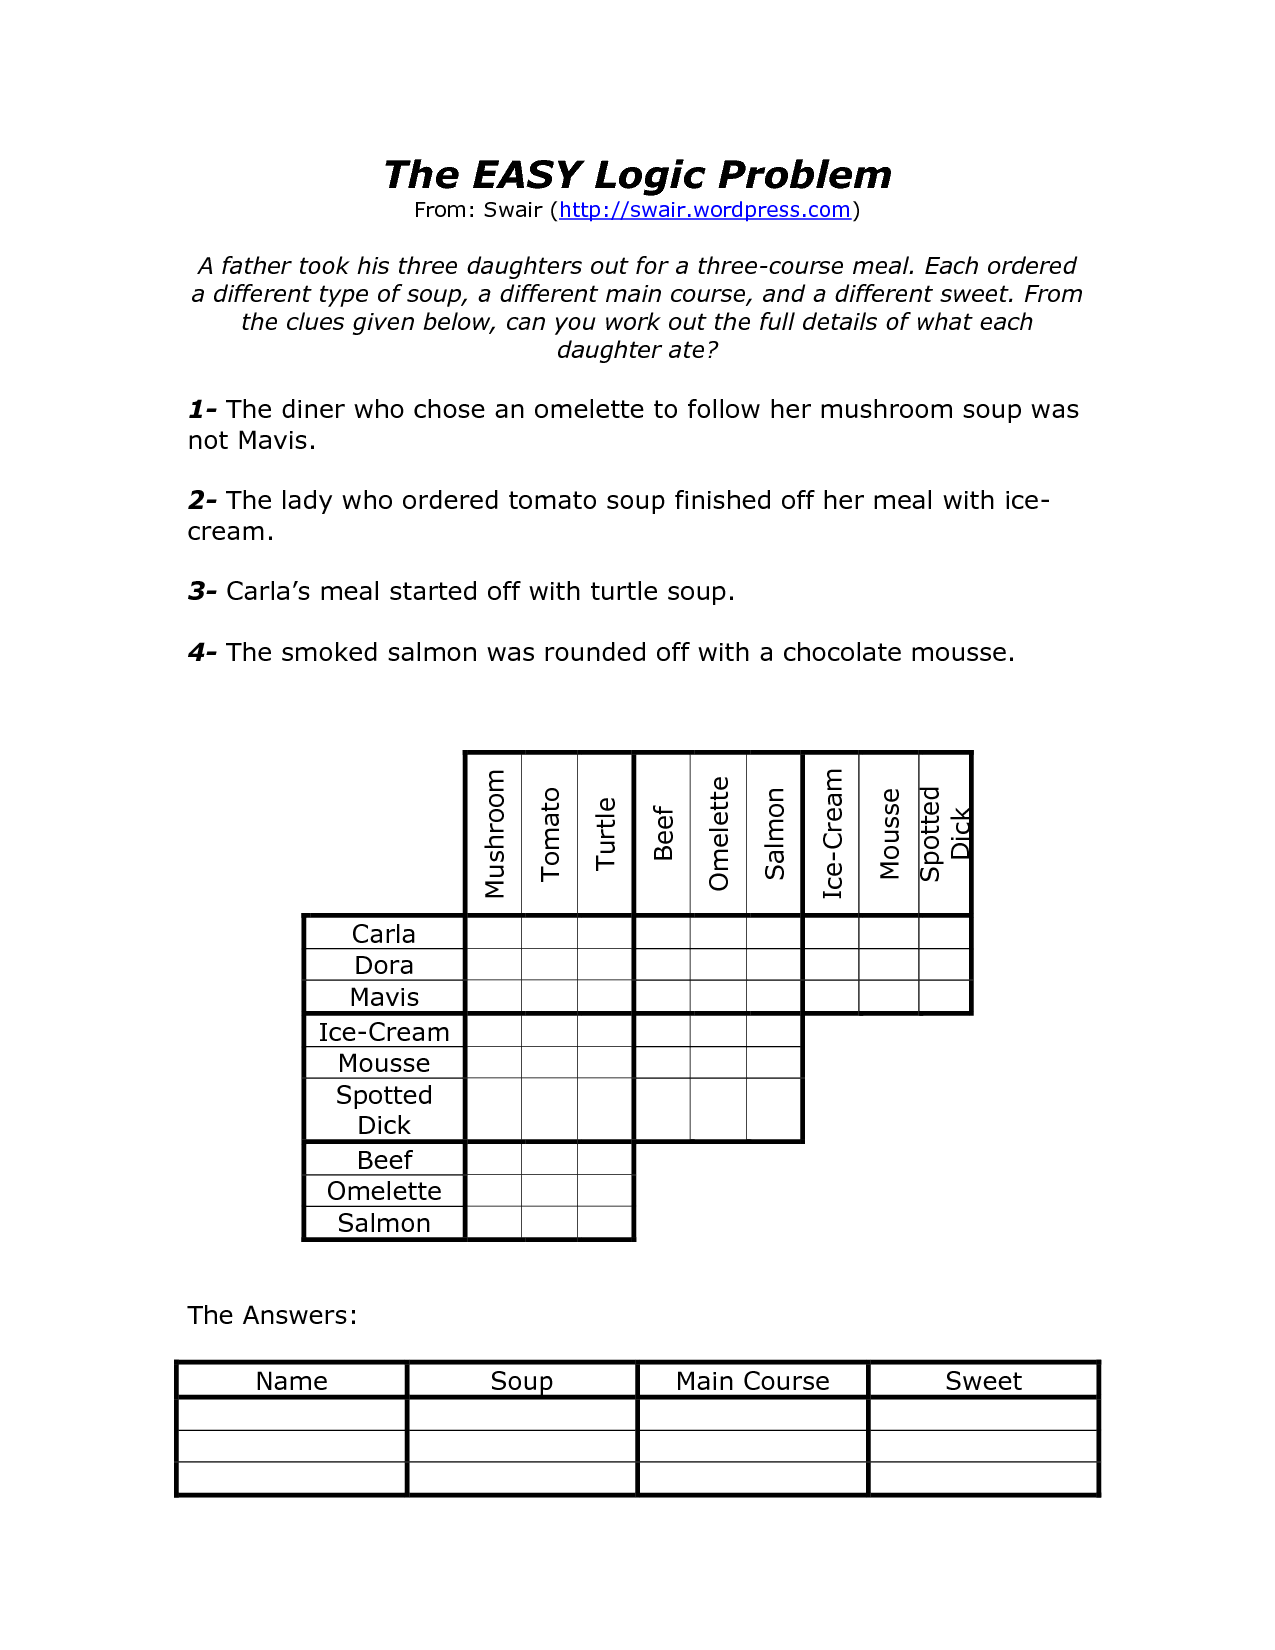 Clean Logic Problems Printable